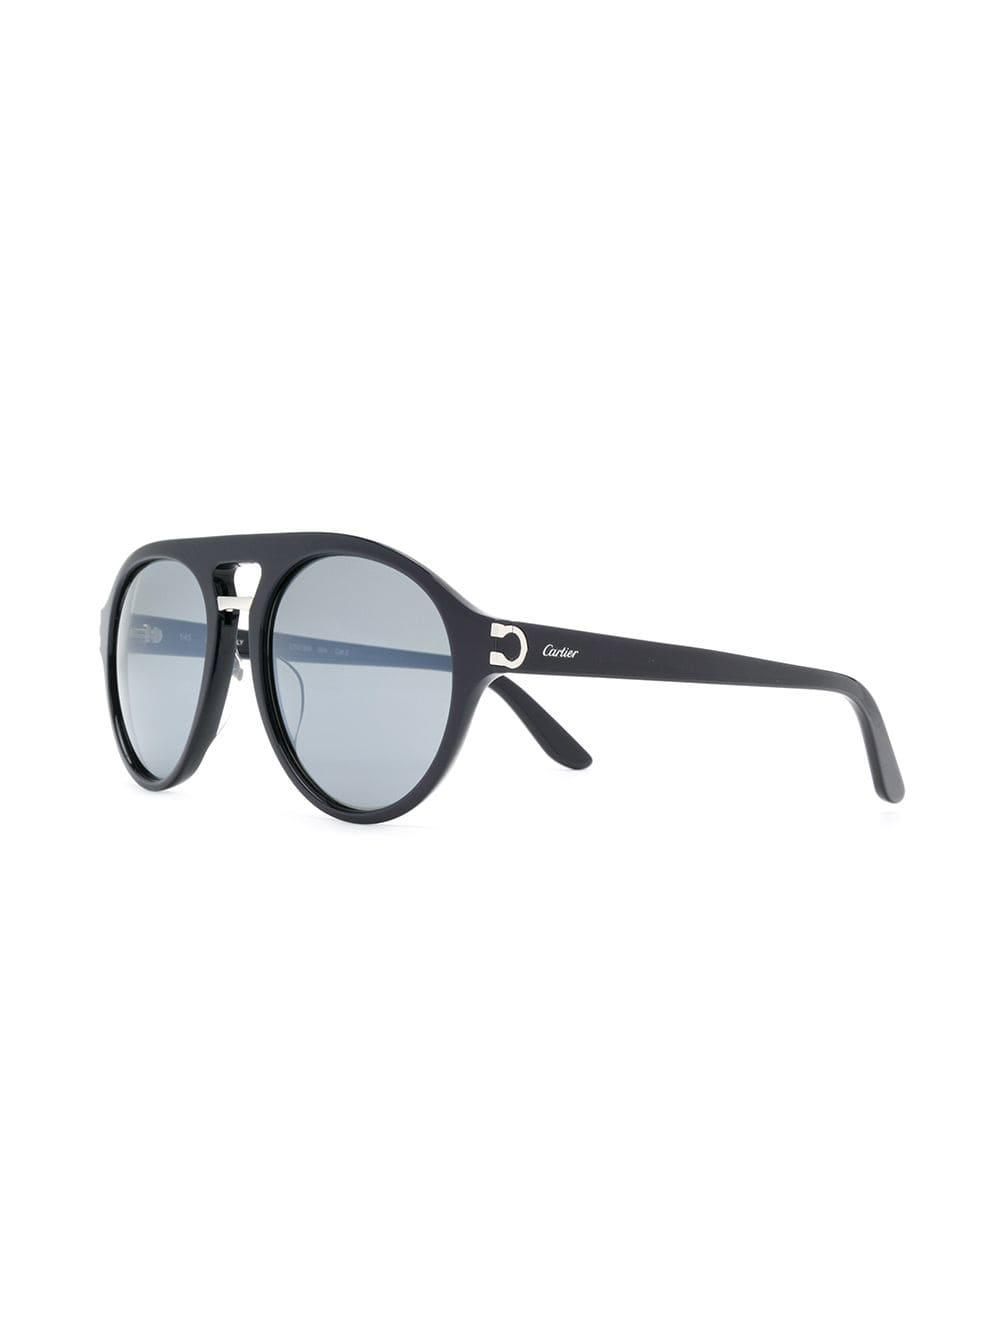 Cartier C Decor Sunglasses In Blue Lyst